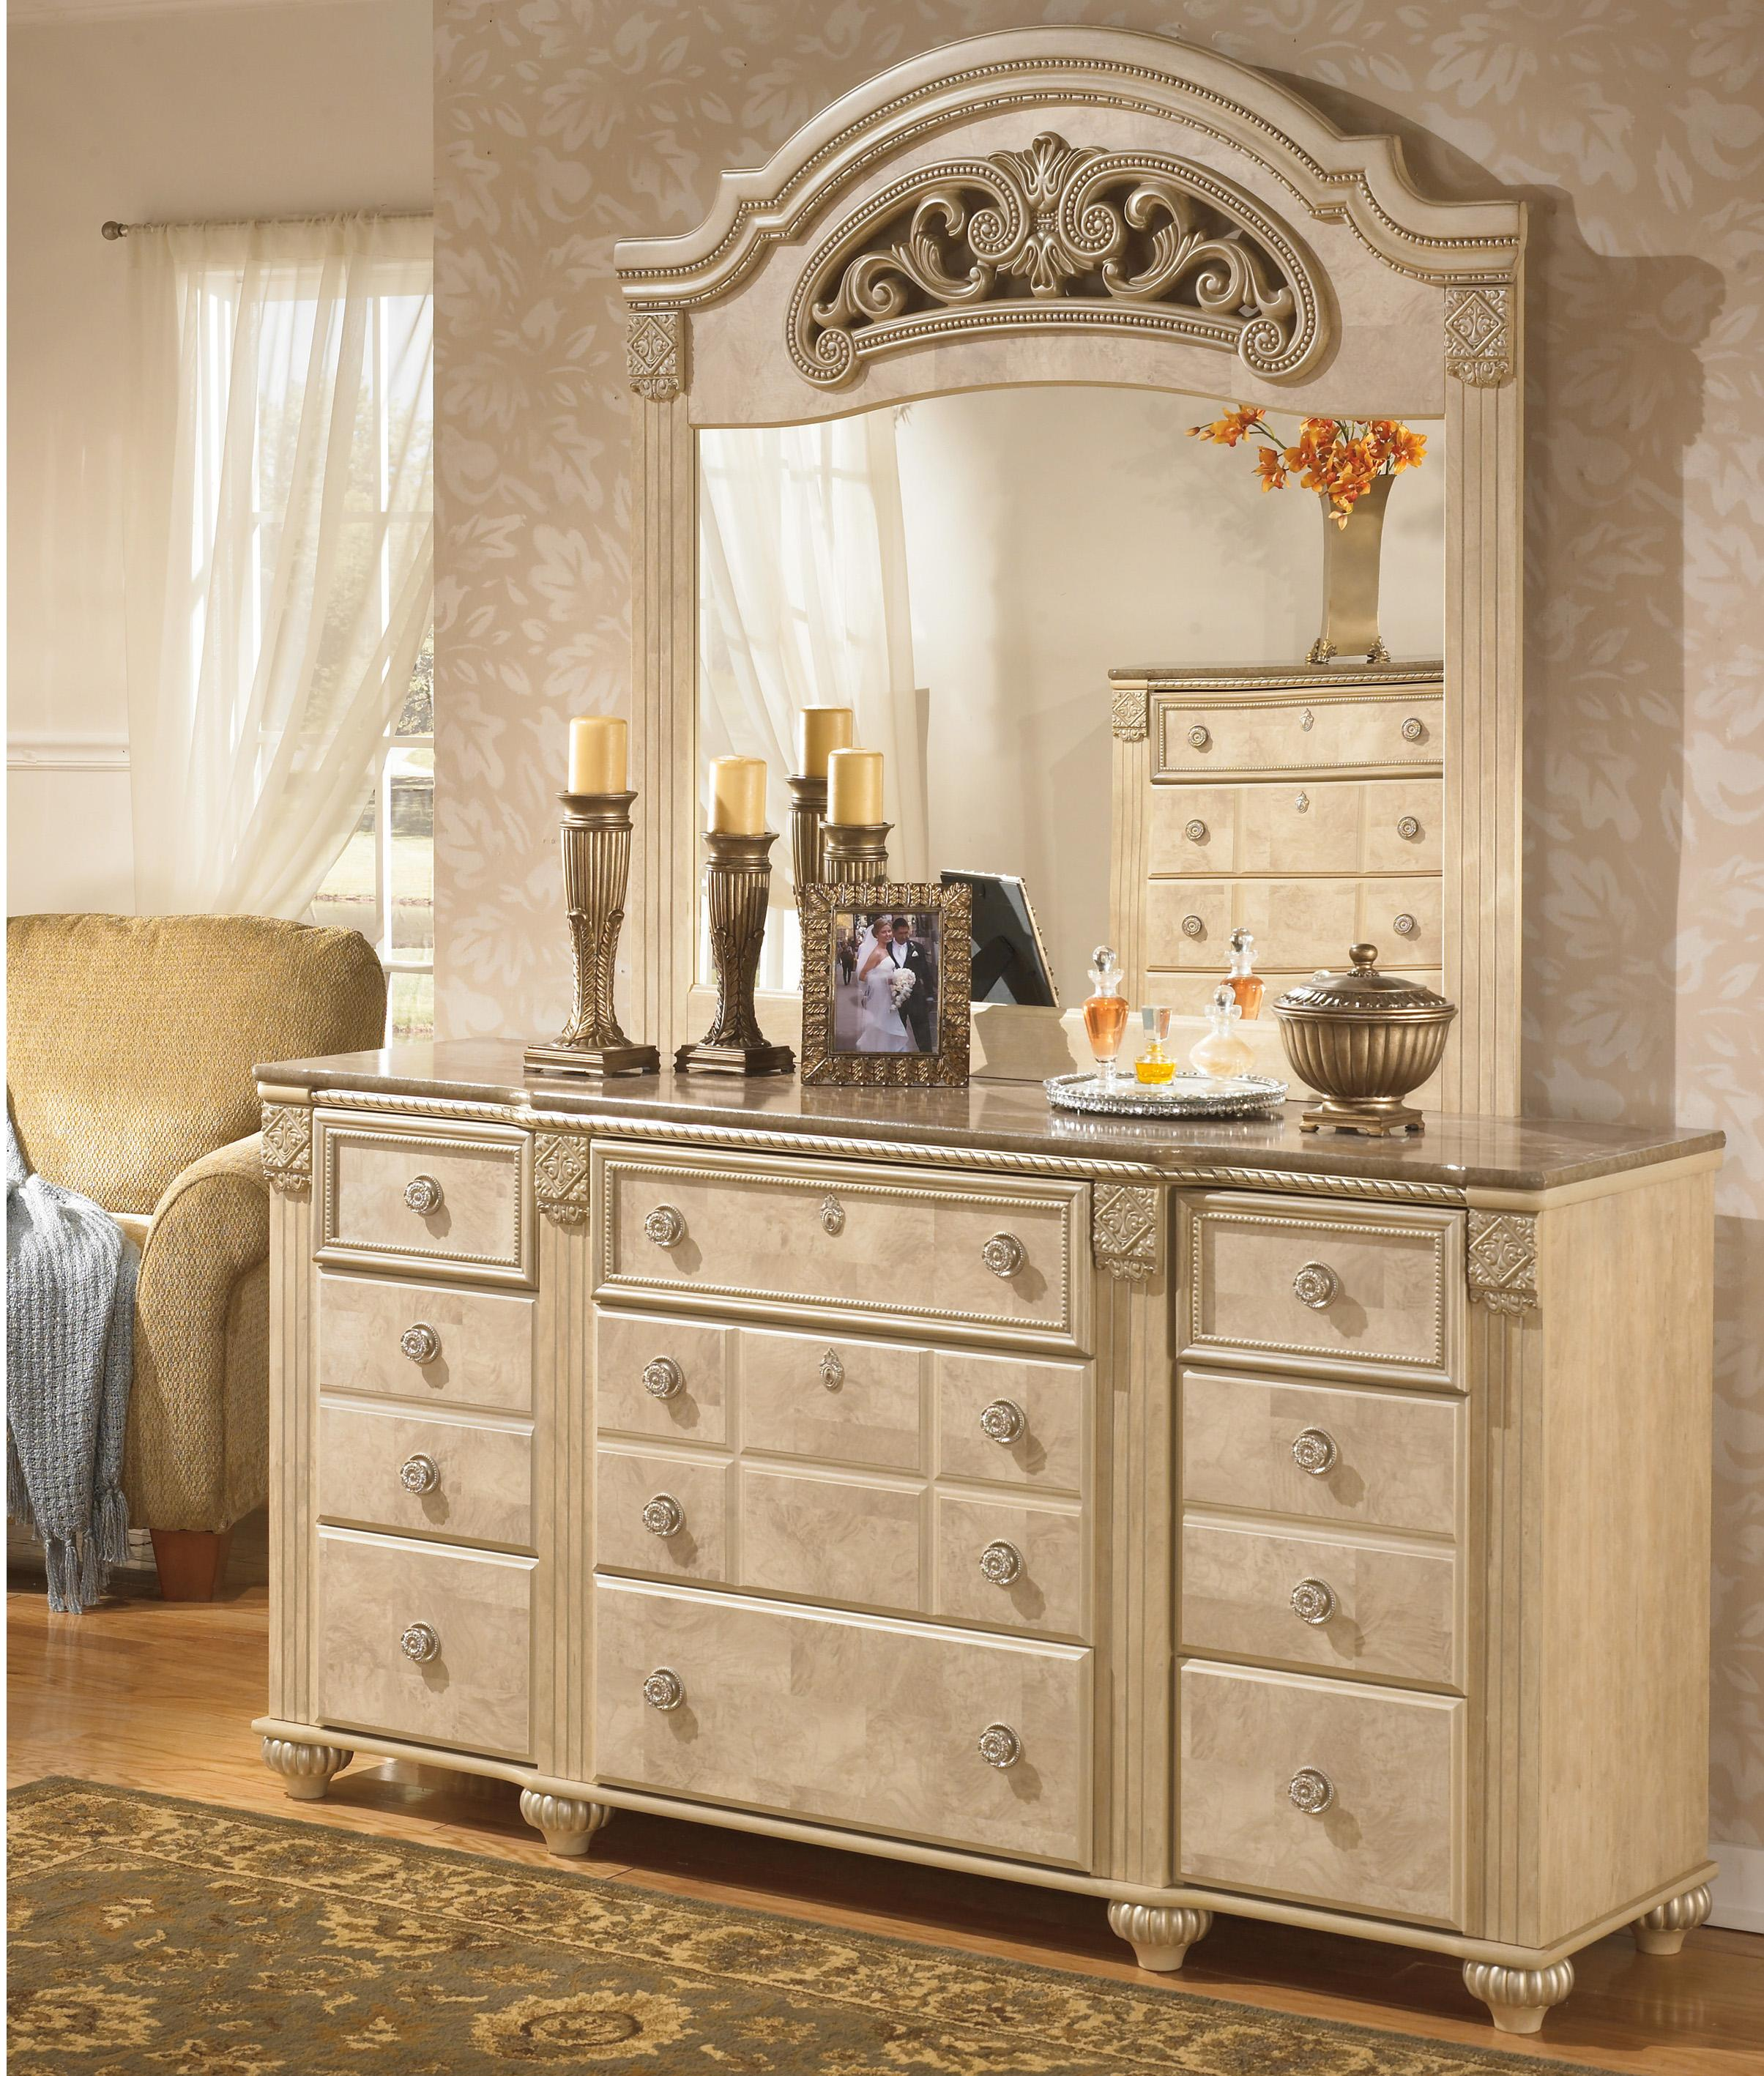 Signature Design by Ashley Saveaha Dresser and Mirror Set - Item Number: B346-31+36